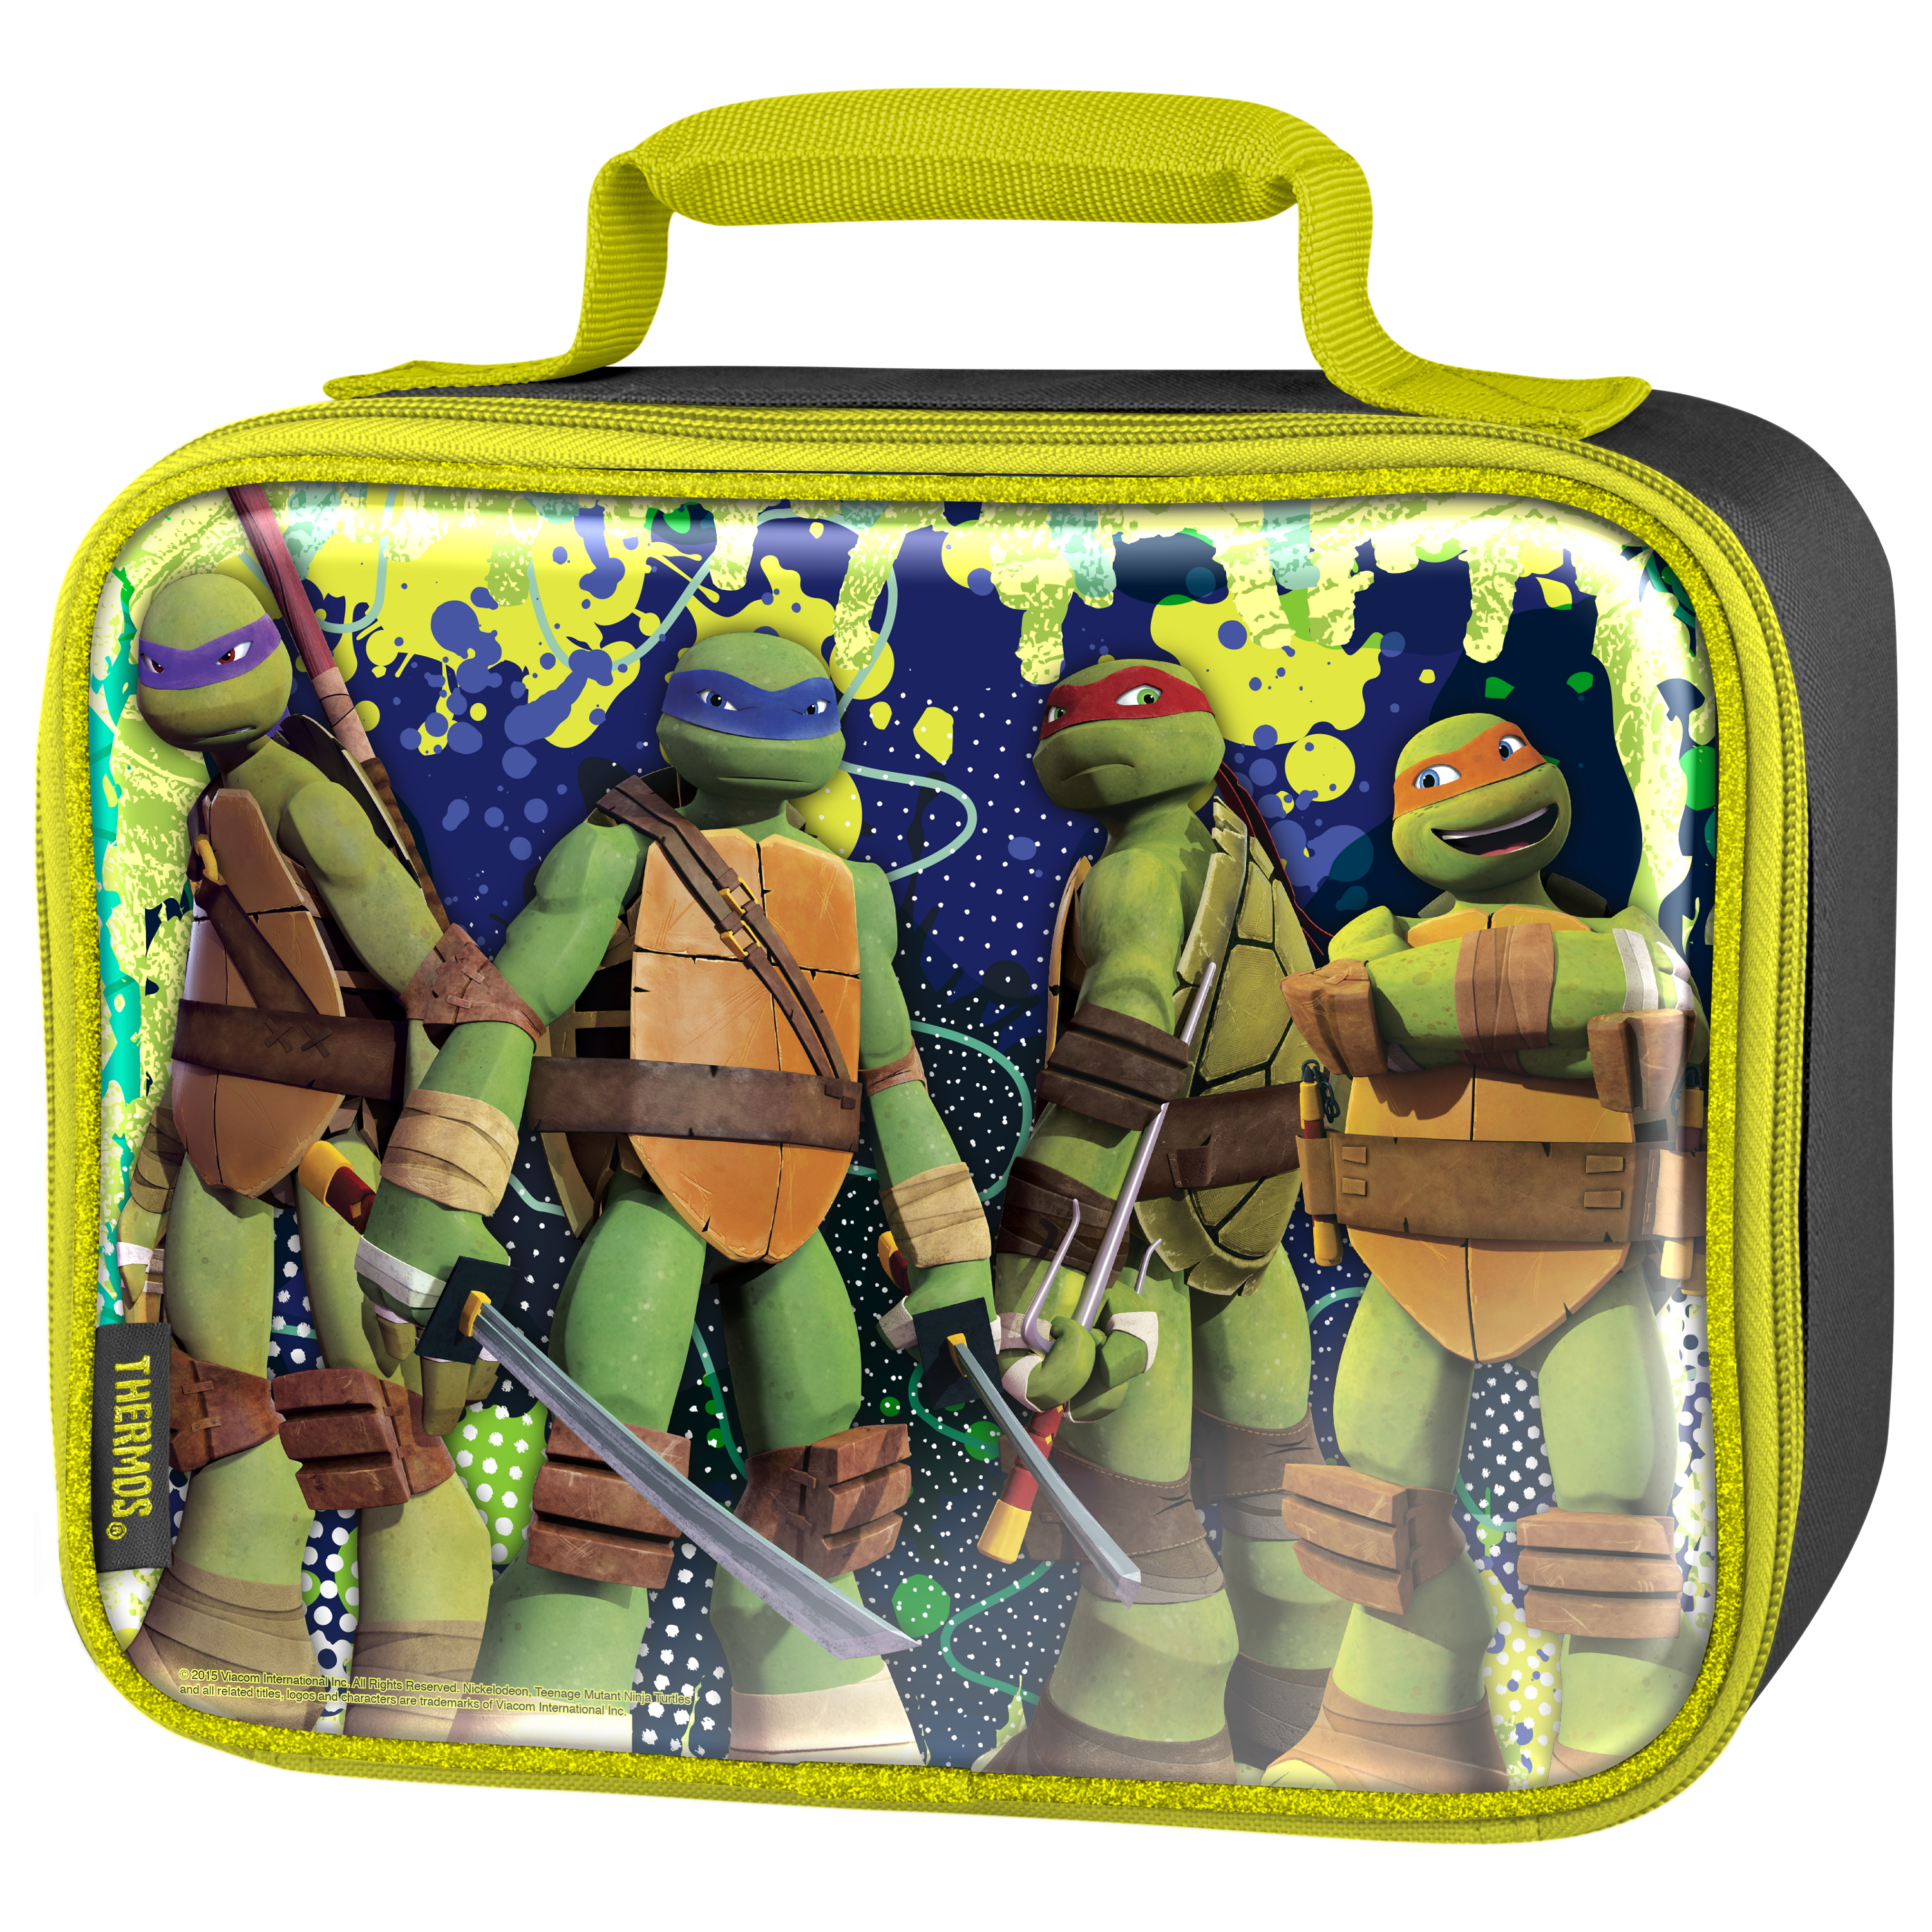 Thermos Teenage Mutant Ninja Turtles TV Show 7.5 x 9.5 Inch Insulated Soft Lunch Bag